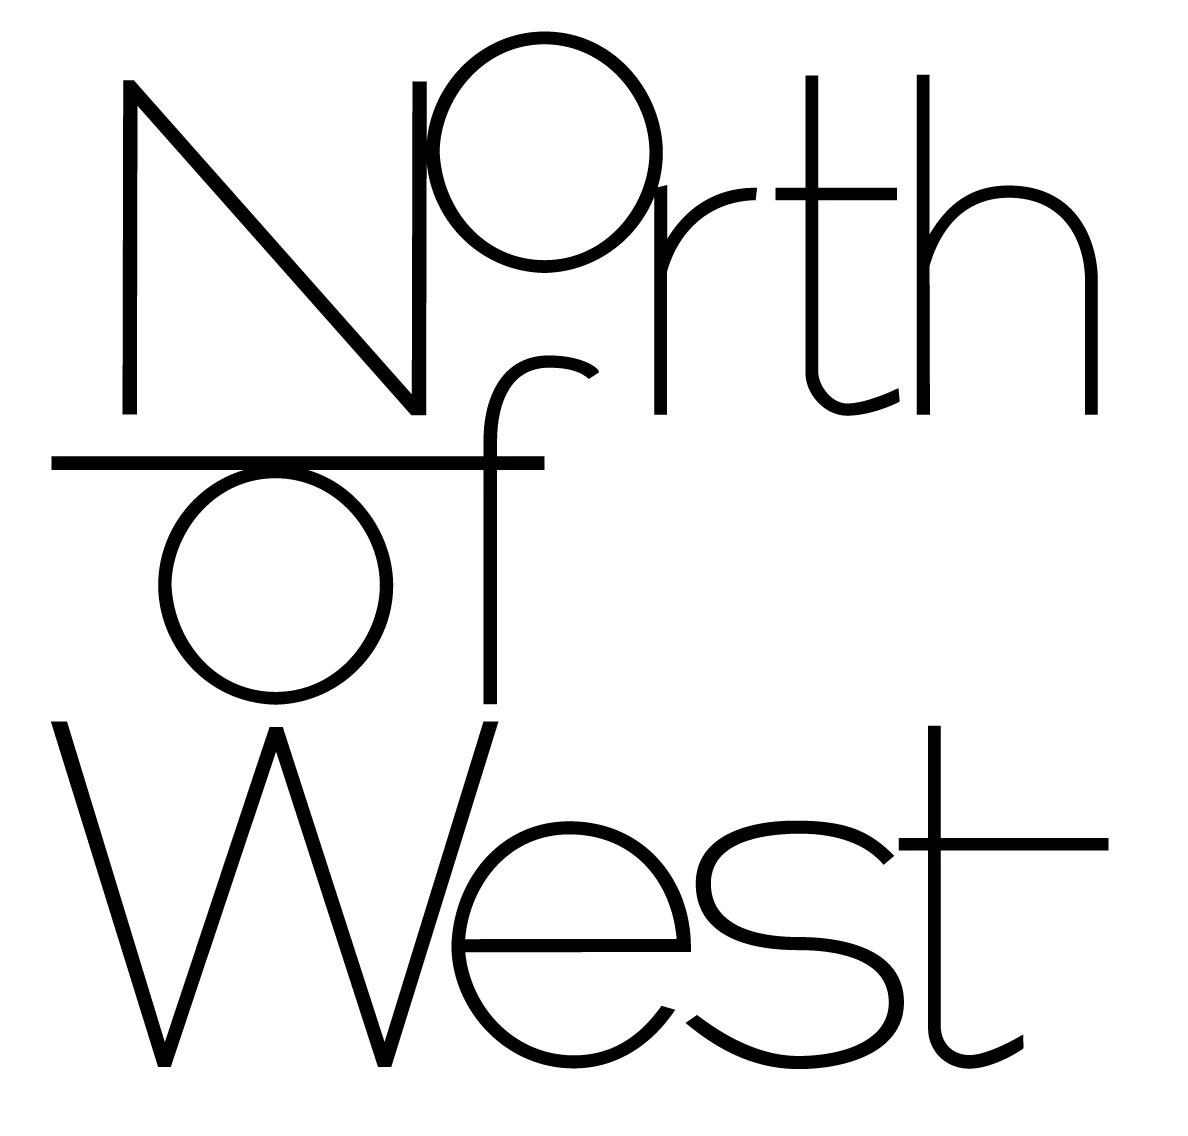 medium resolution of north of west